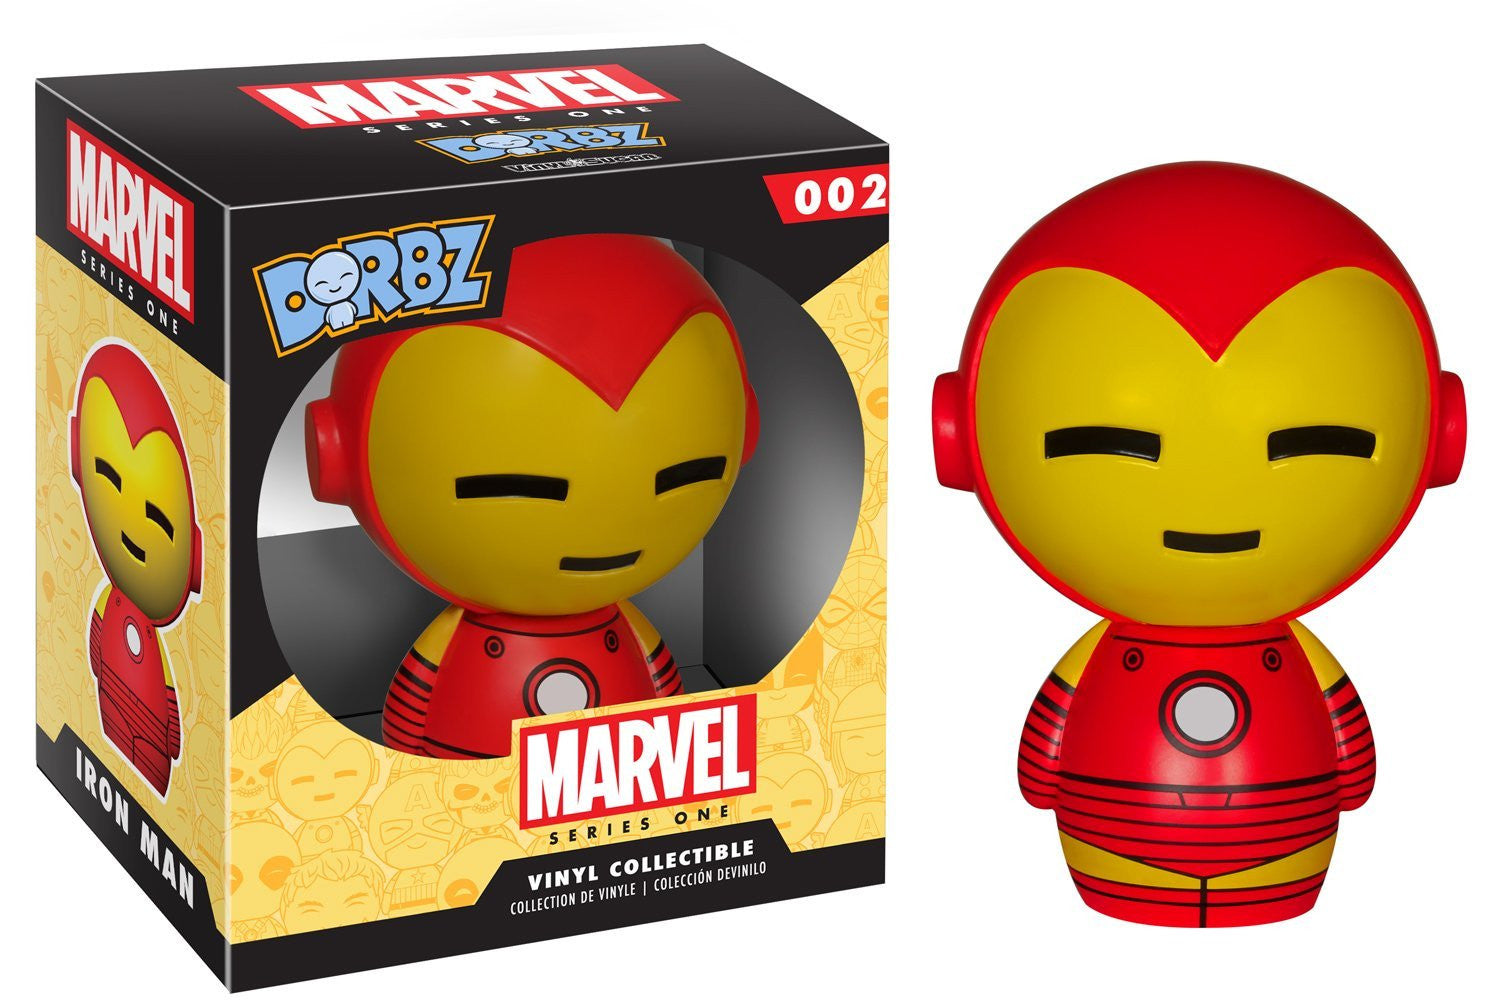 Funko Dorbz - Marvel Series 1 #002 - Iron Man Vinyl Figure